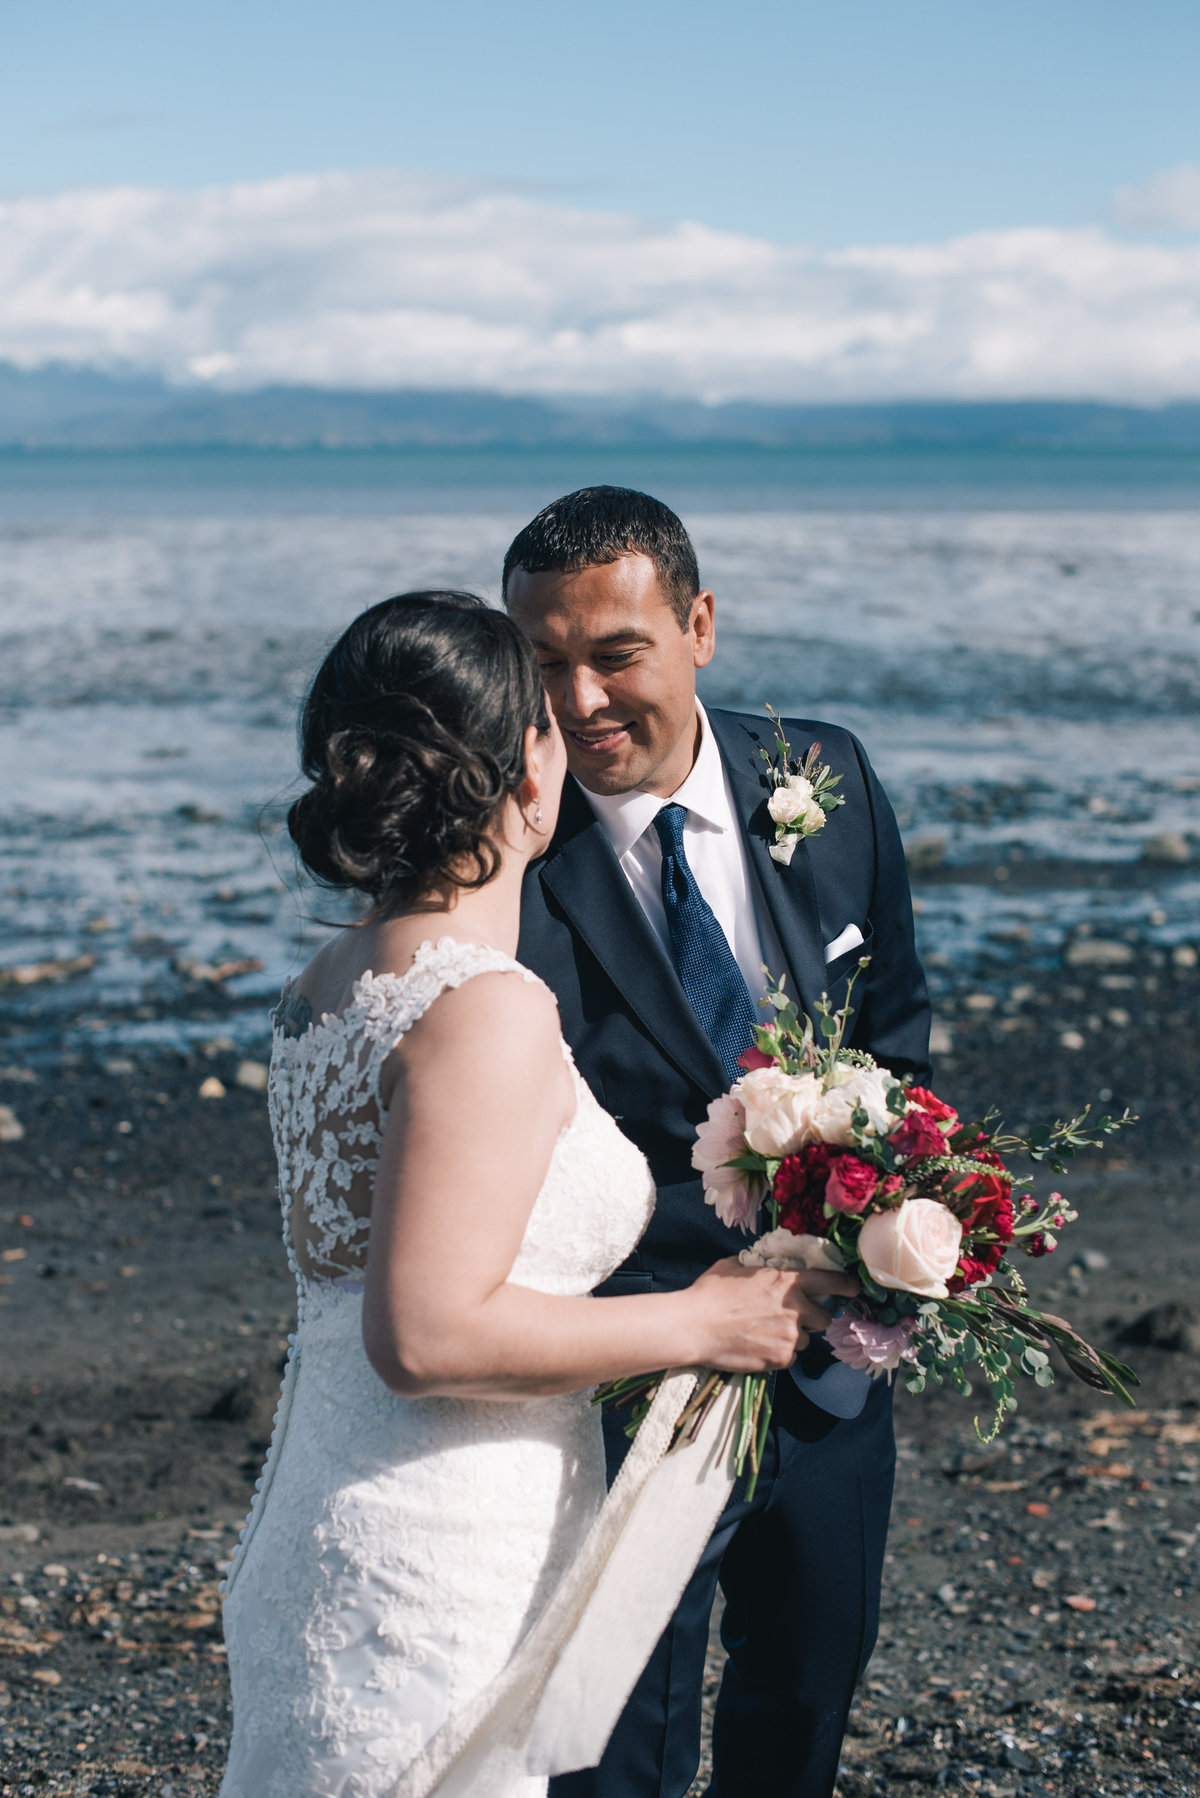 051_Erica Rose Photography_Anchorage Wedding Photographer